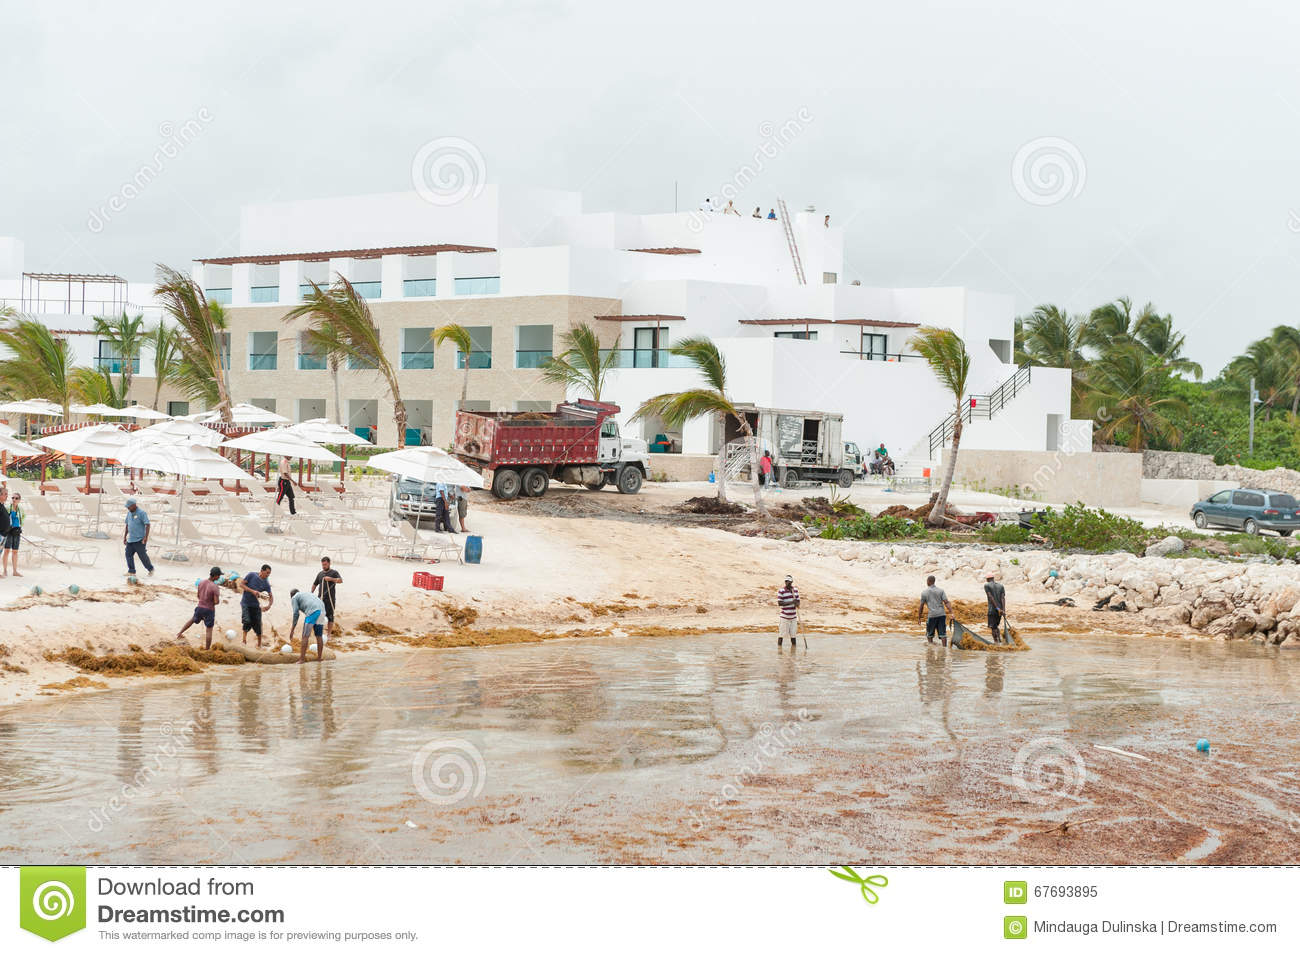 PUNTA CANA, DOMINICAN REPUBLIC - JUNE 18, 2015: Local People Trying Remove Weed From Water In ...